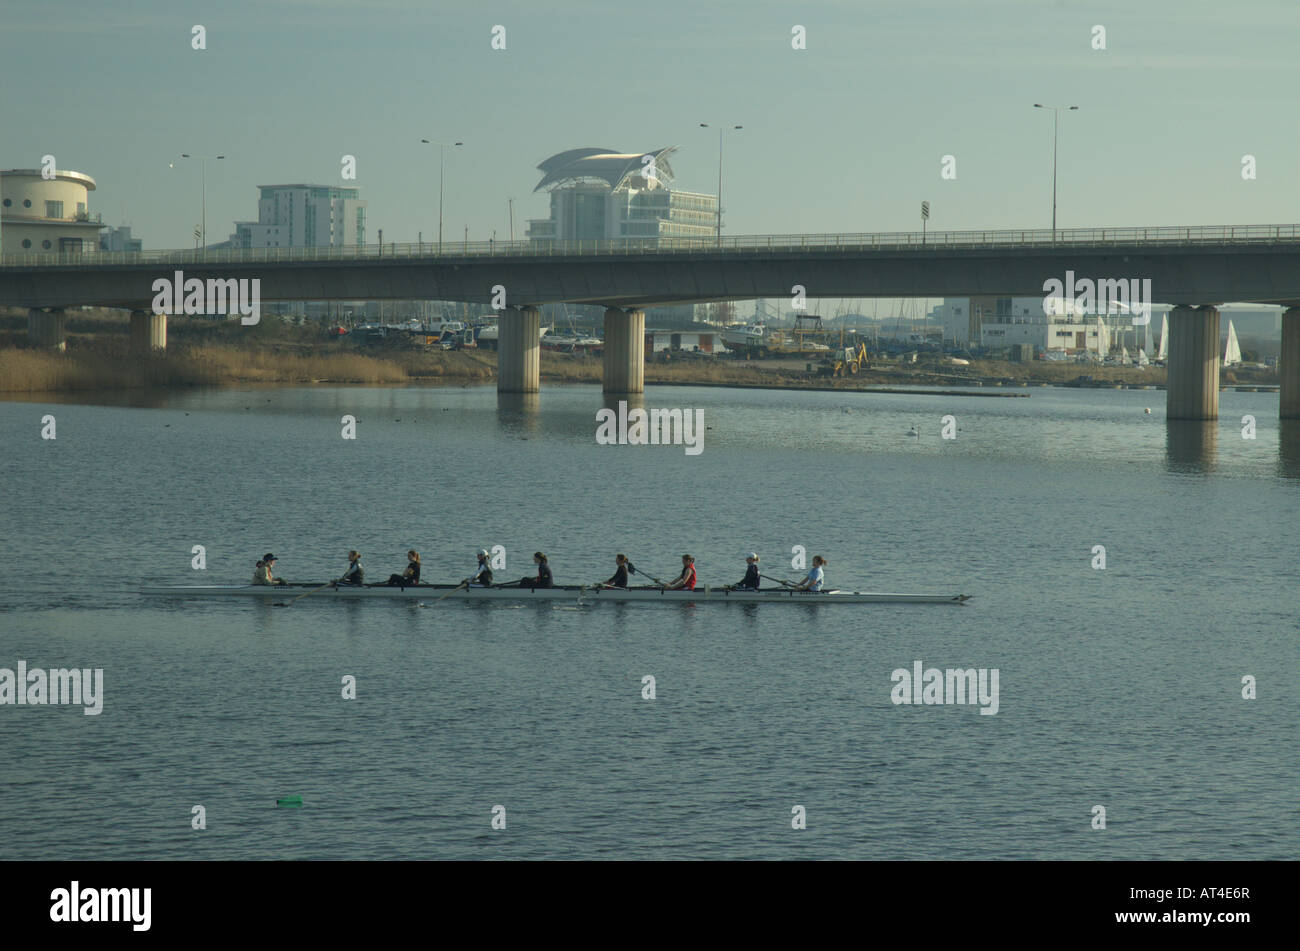 Coxed eights rowing on river - Stock Image